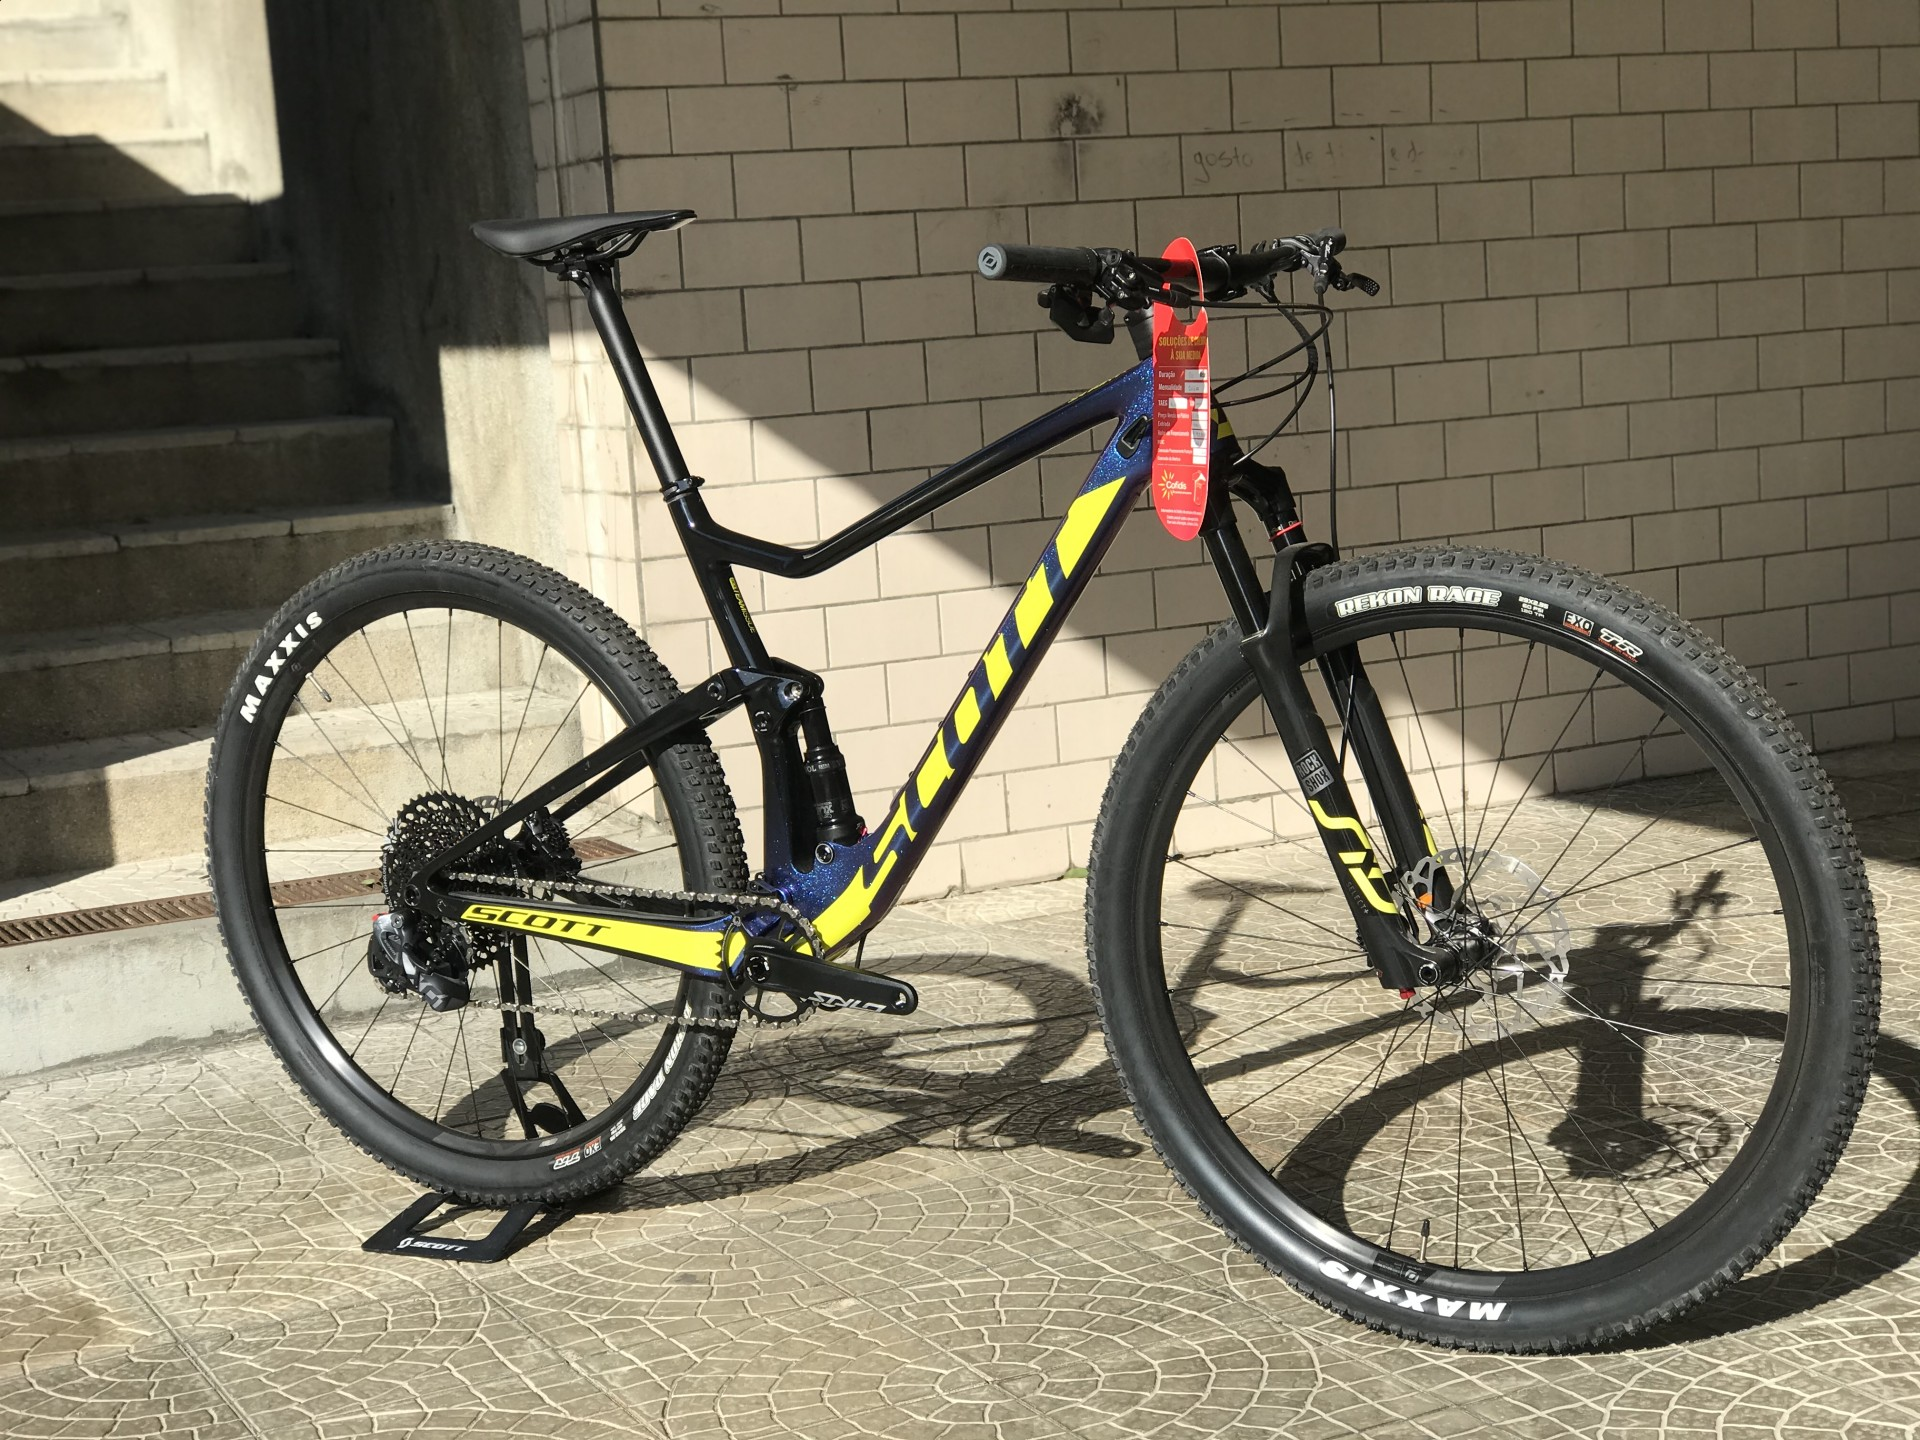 Bicicleta Scott Spark rc 900 Team Issue AXS - 2021